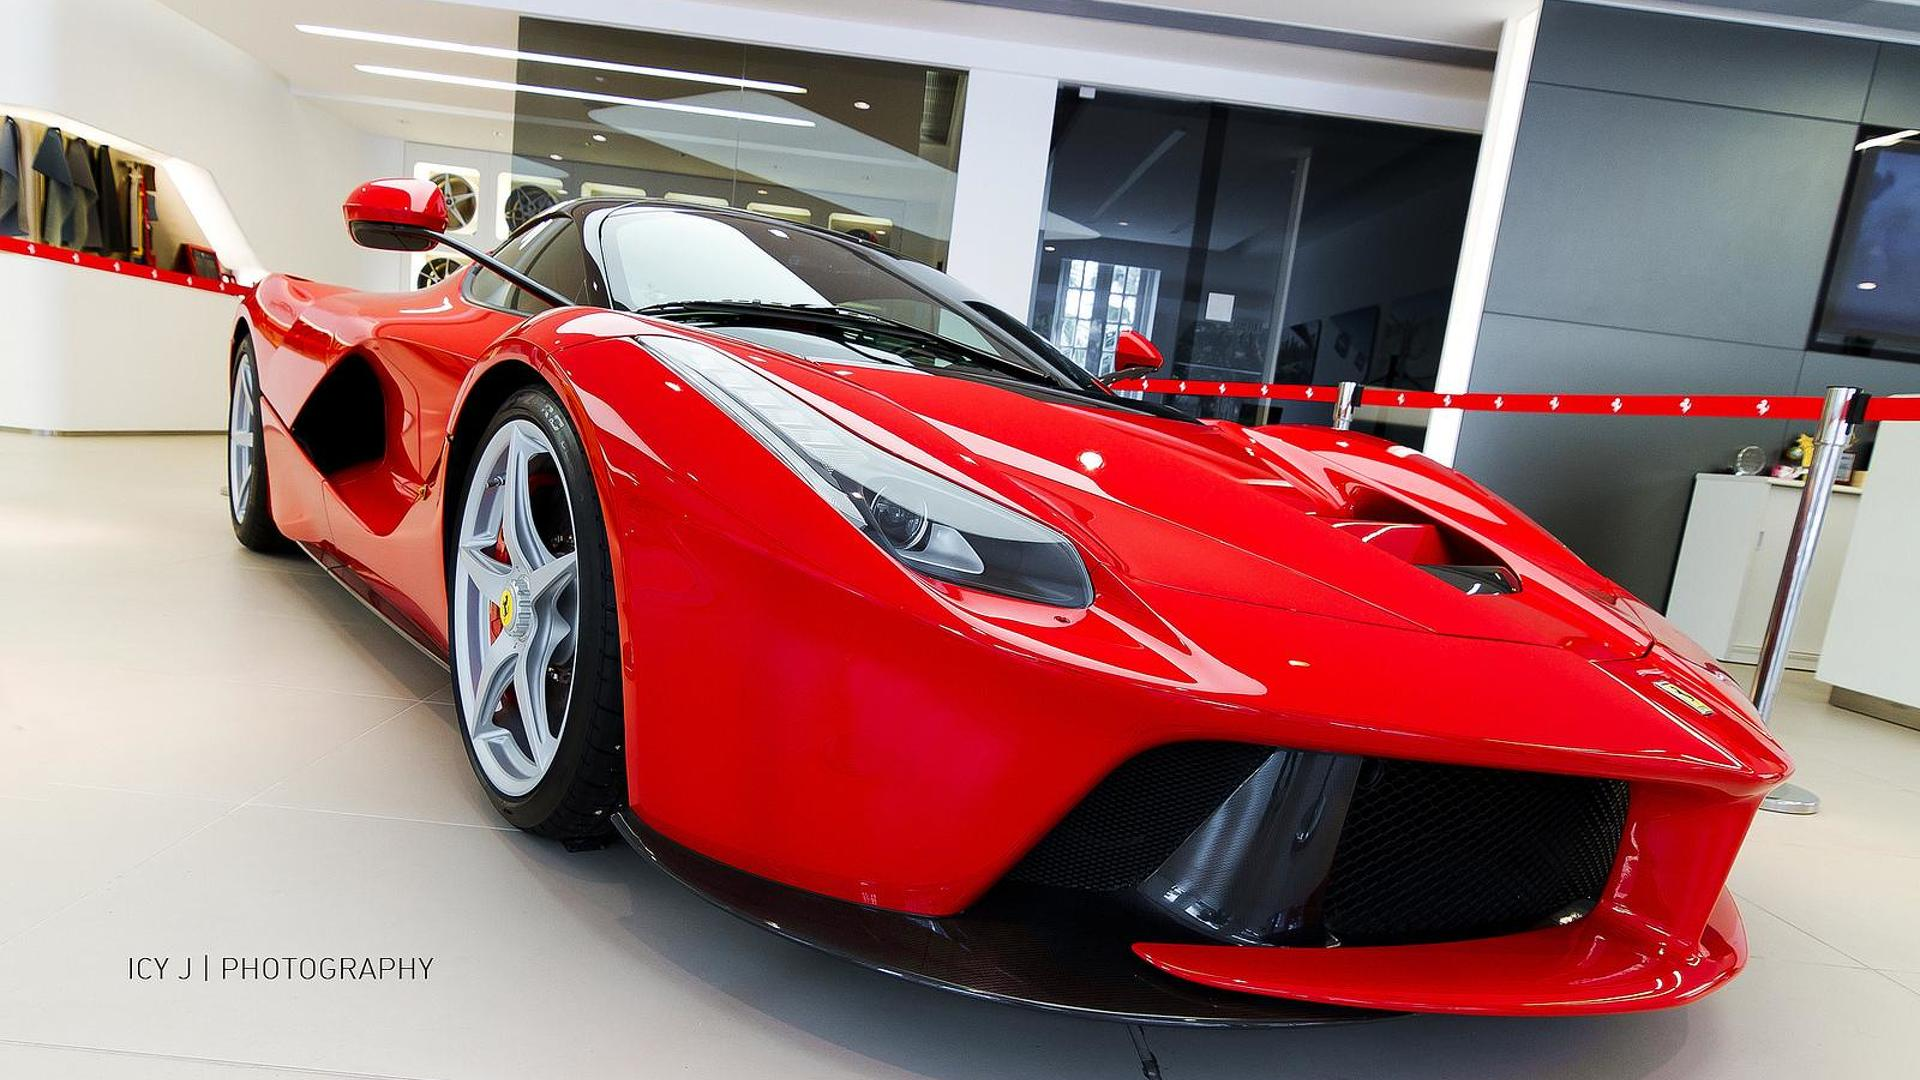 LaFerrari buyers willing to pay 1.25M EUR extra to get their cars earlier – report